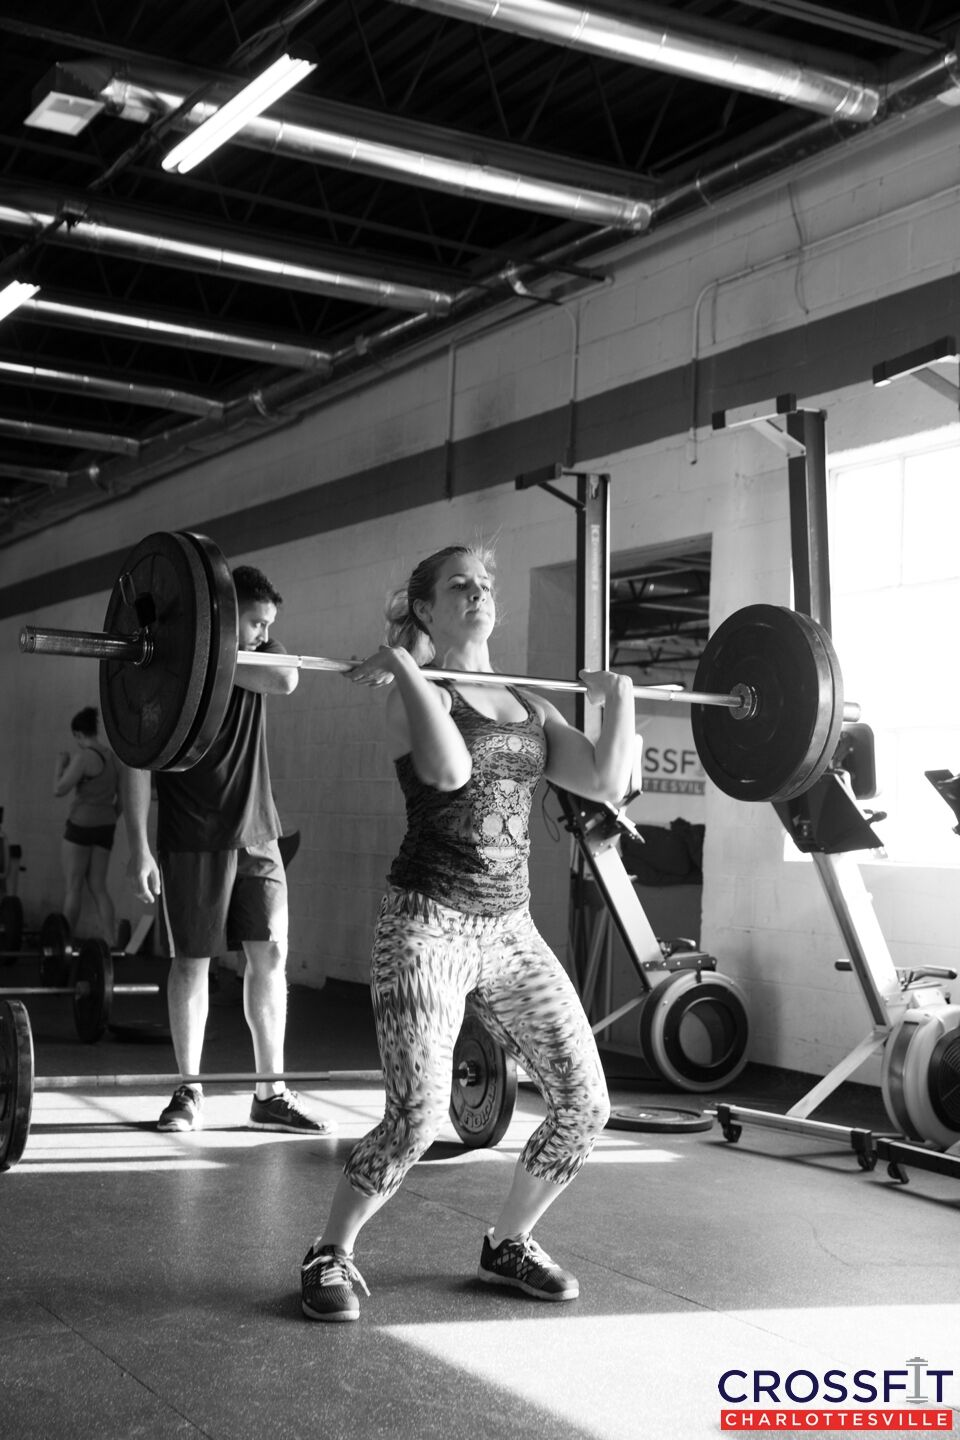 crossfit charlottesville_0112_preview.jpeg